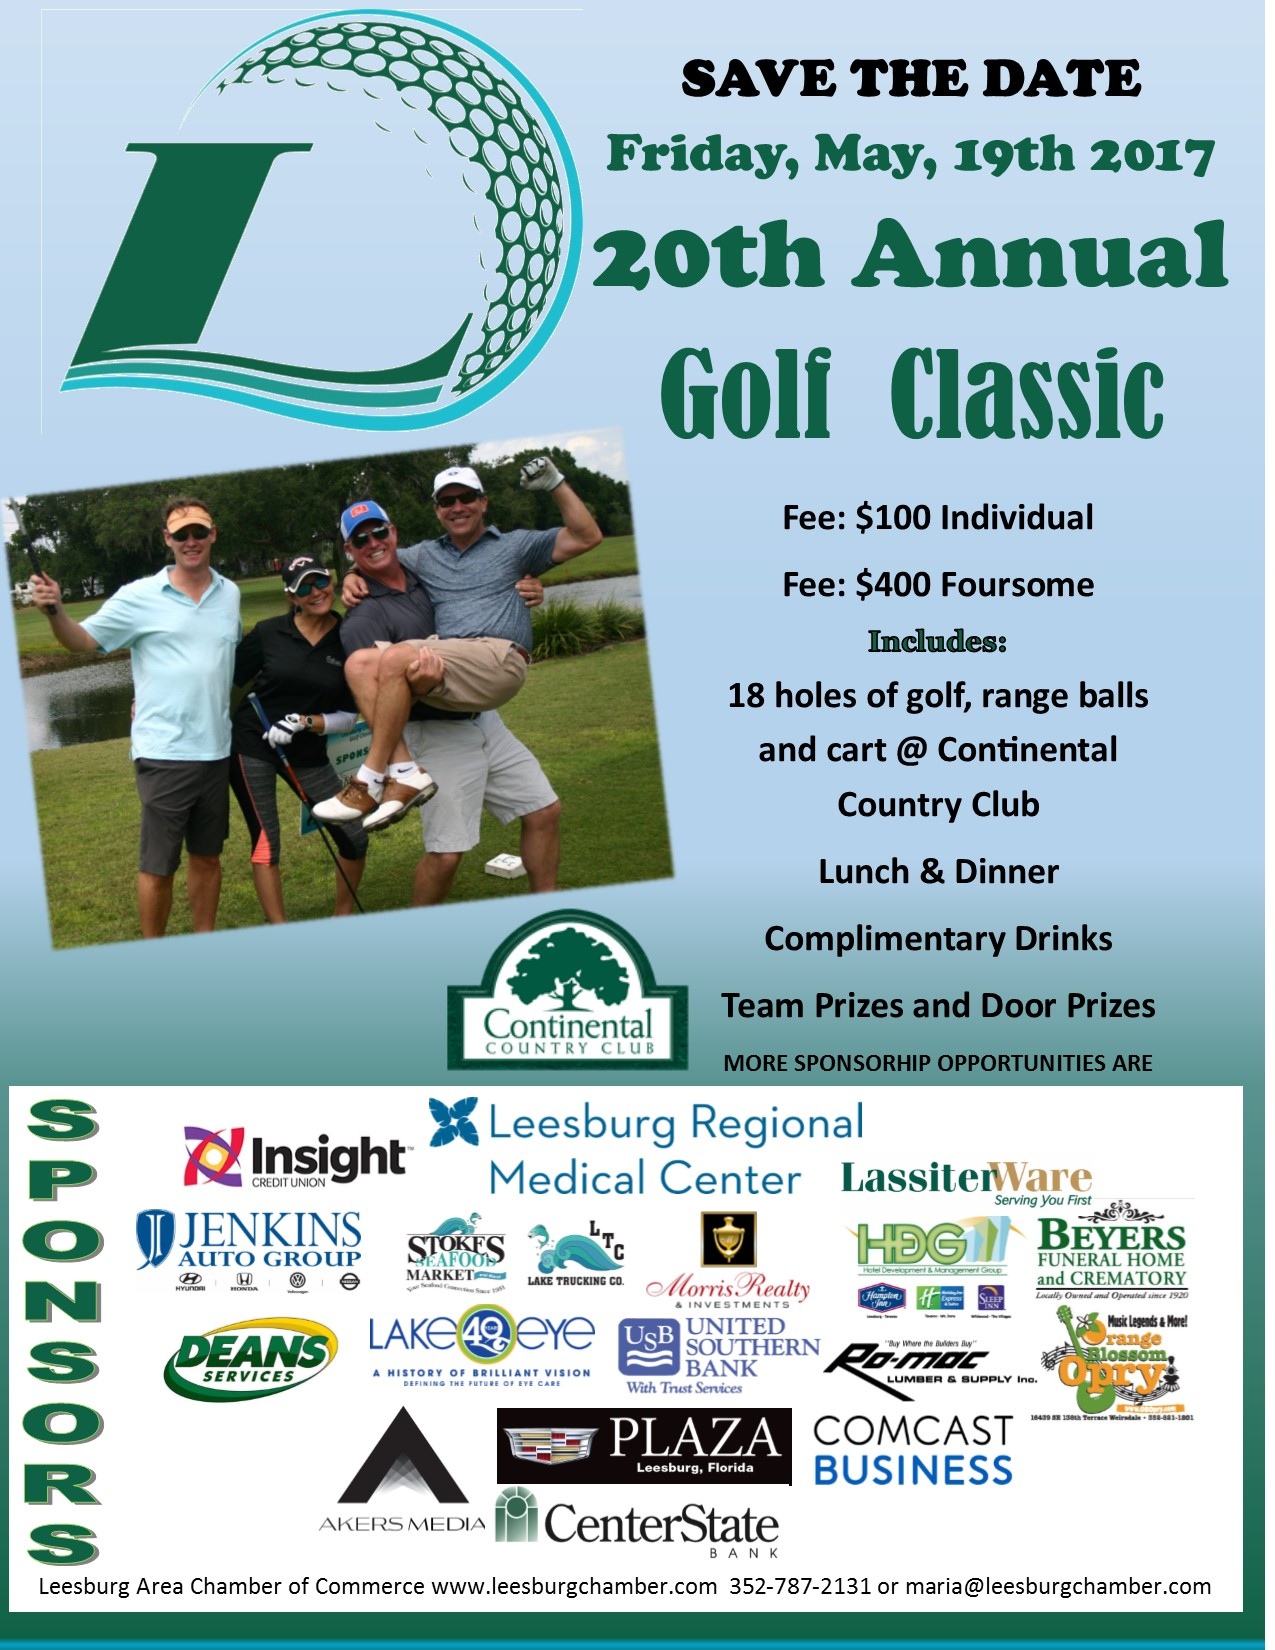 Golf Classic Save the Date flyer